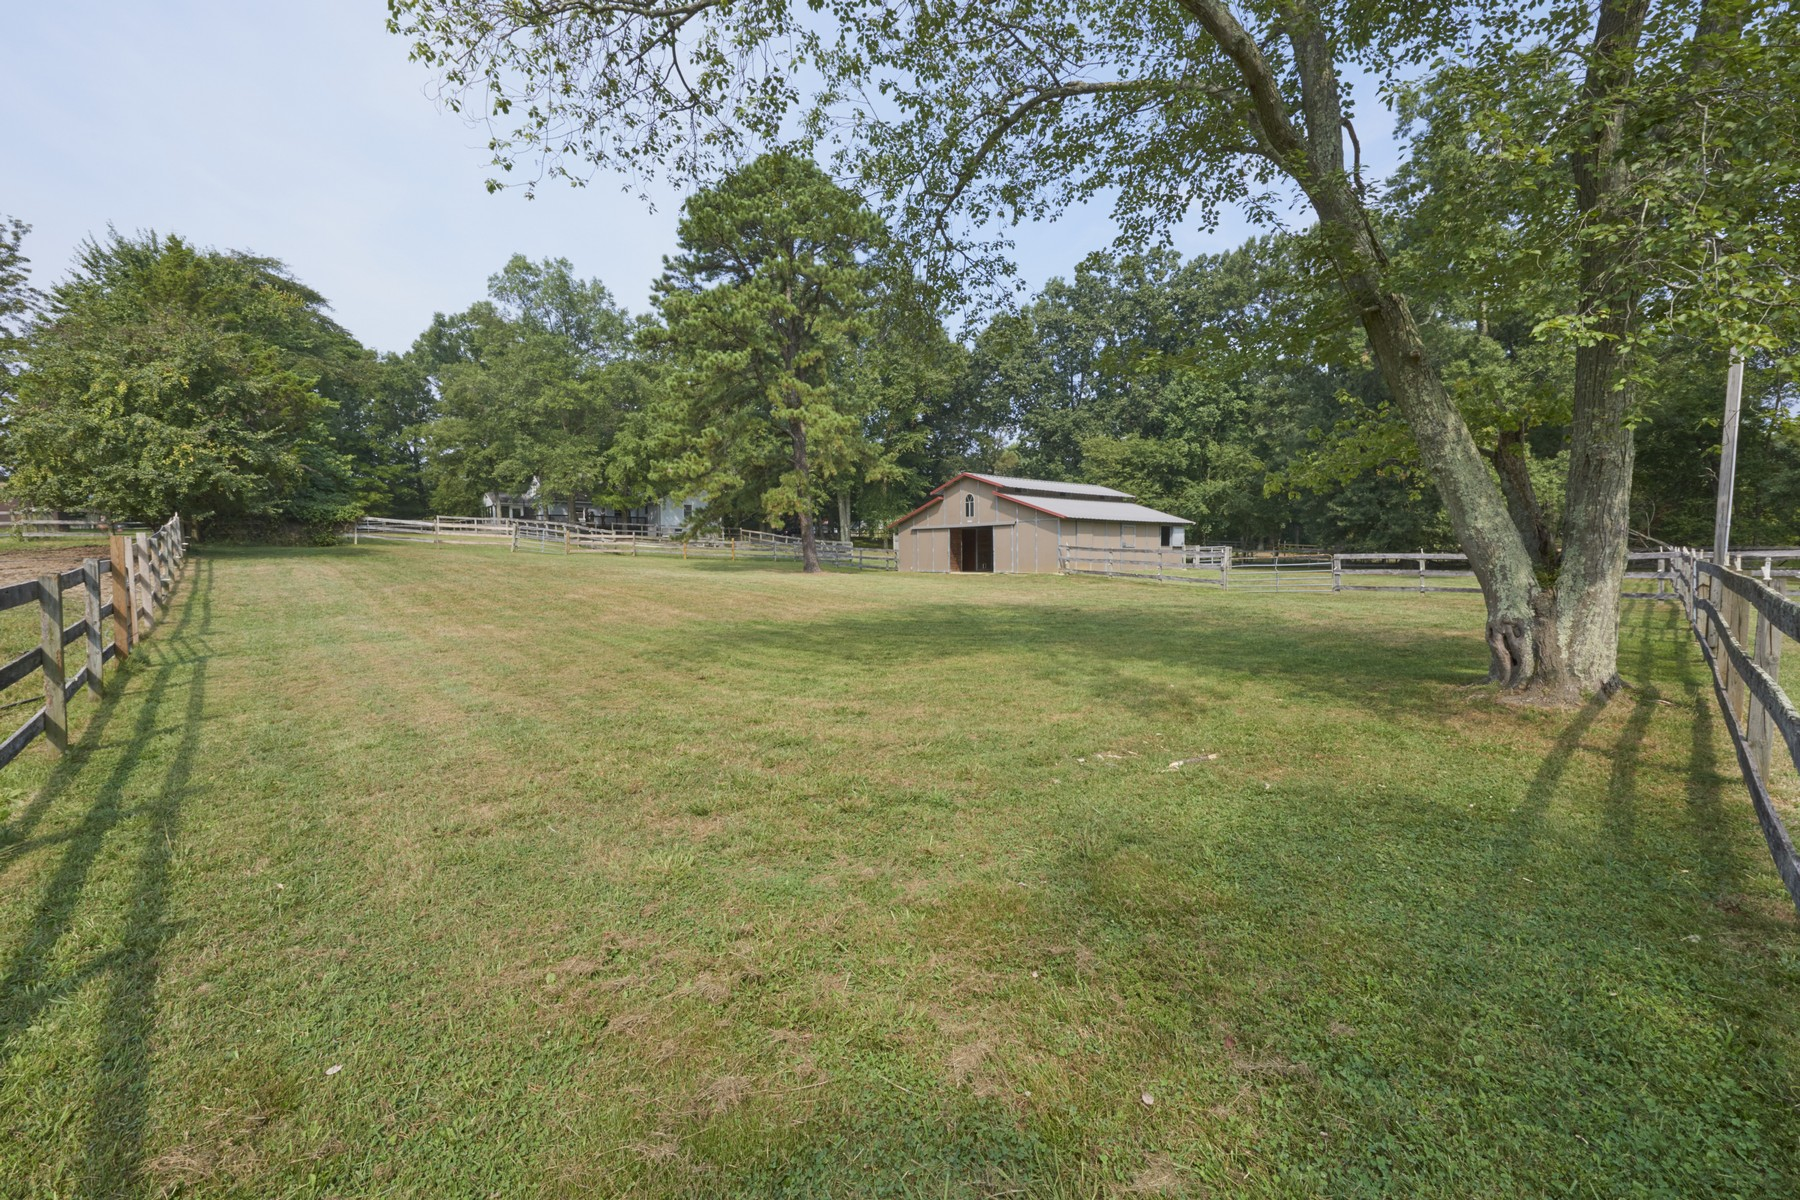 Farm / Ranch / Plantation for Sale at Premier Equestrian Facility 141 Colts Neck Rd Farmingdale, New Jersey, 07727 United States